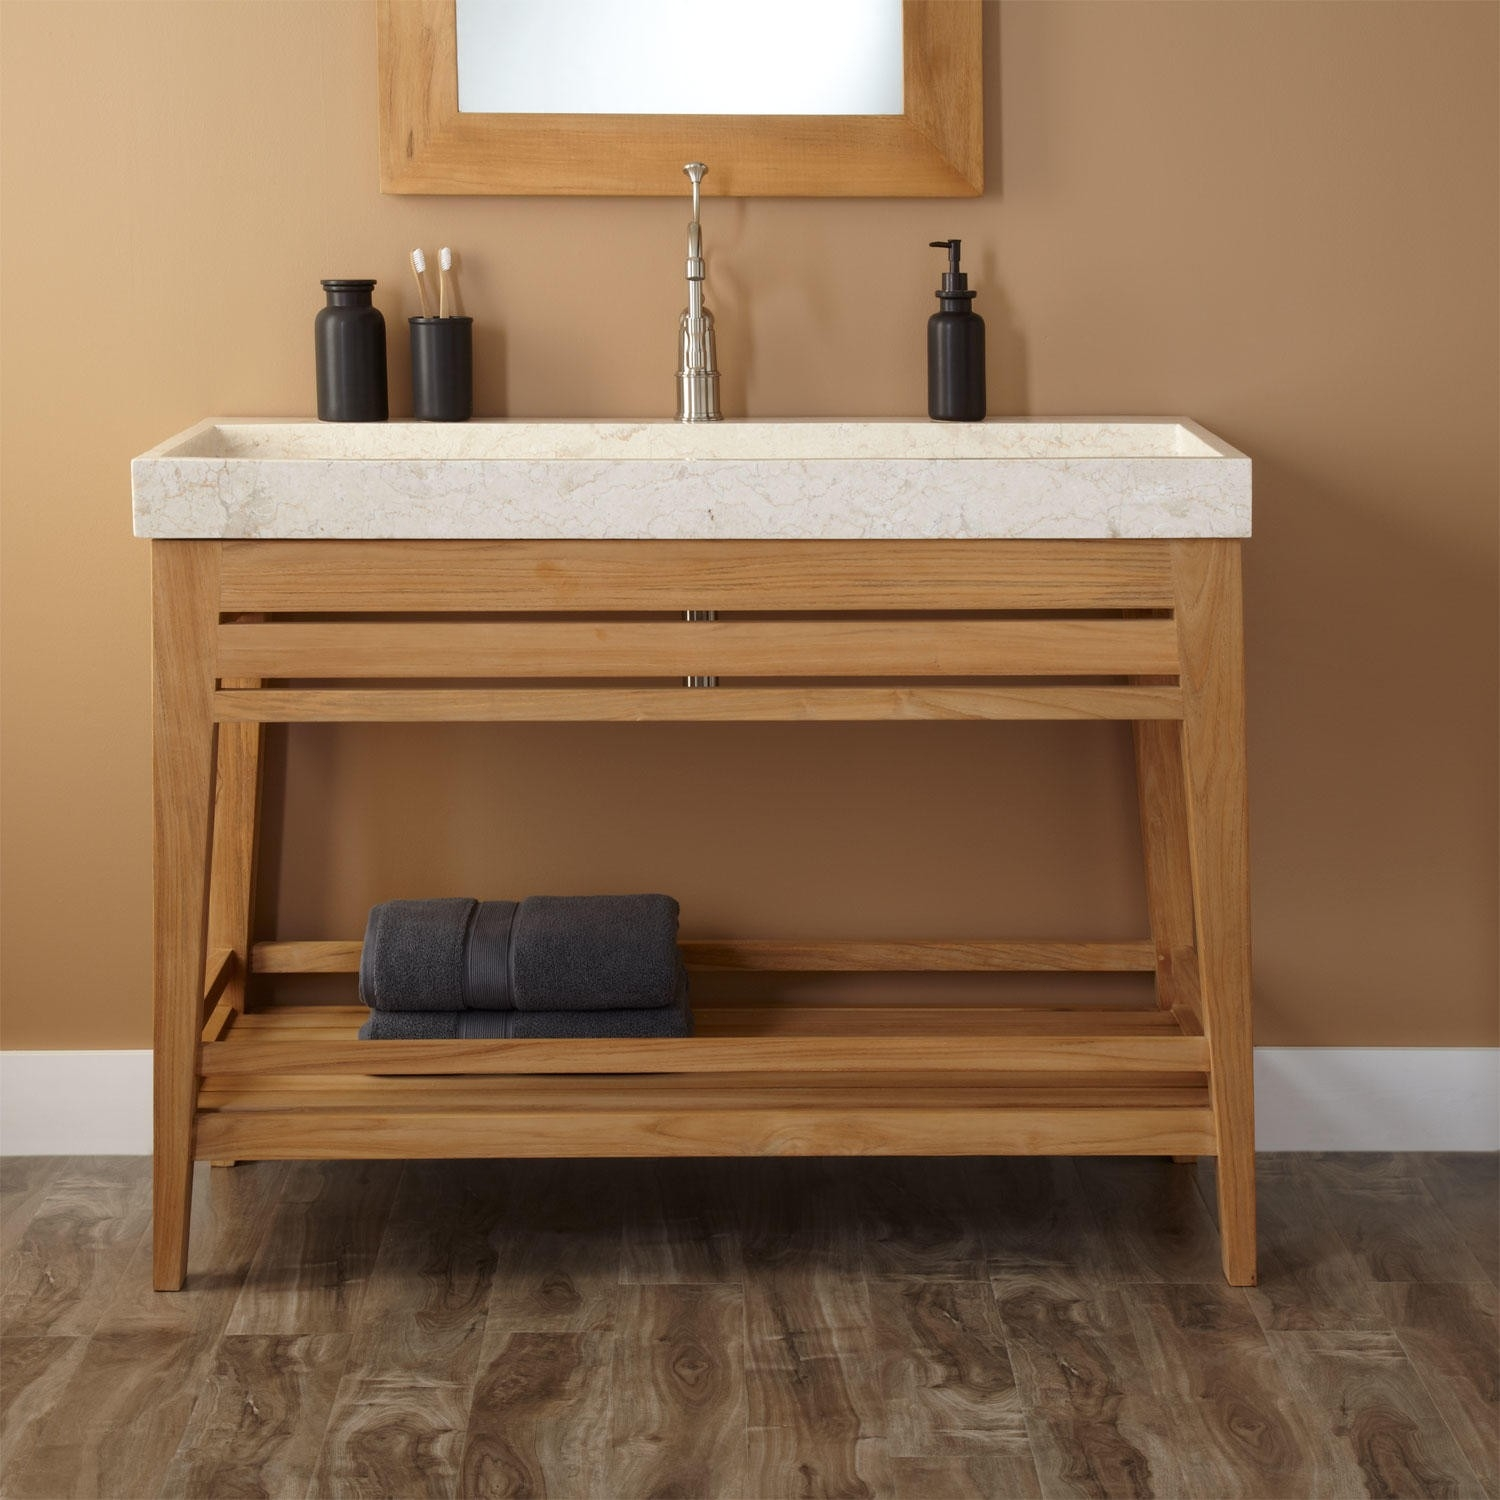 48 Bathroom Vanity With Trough Sink